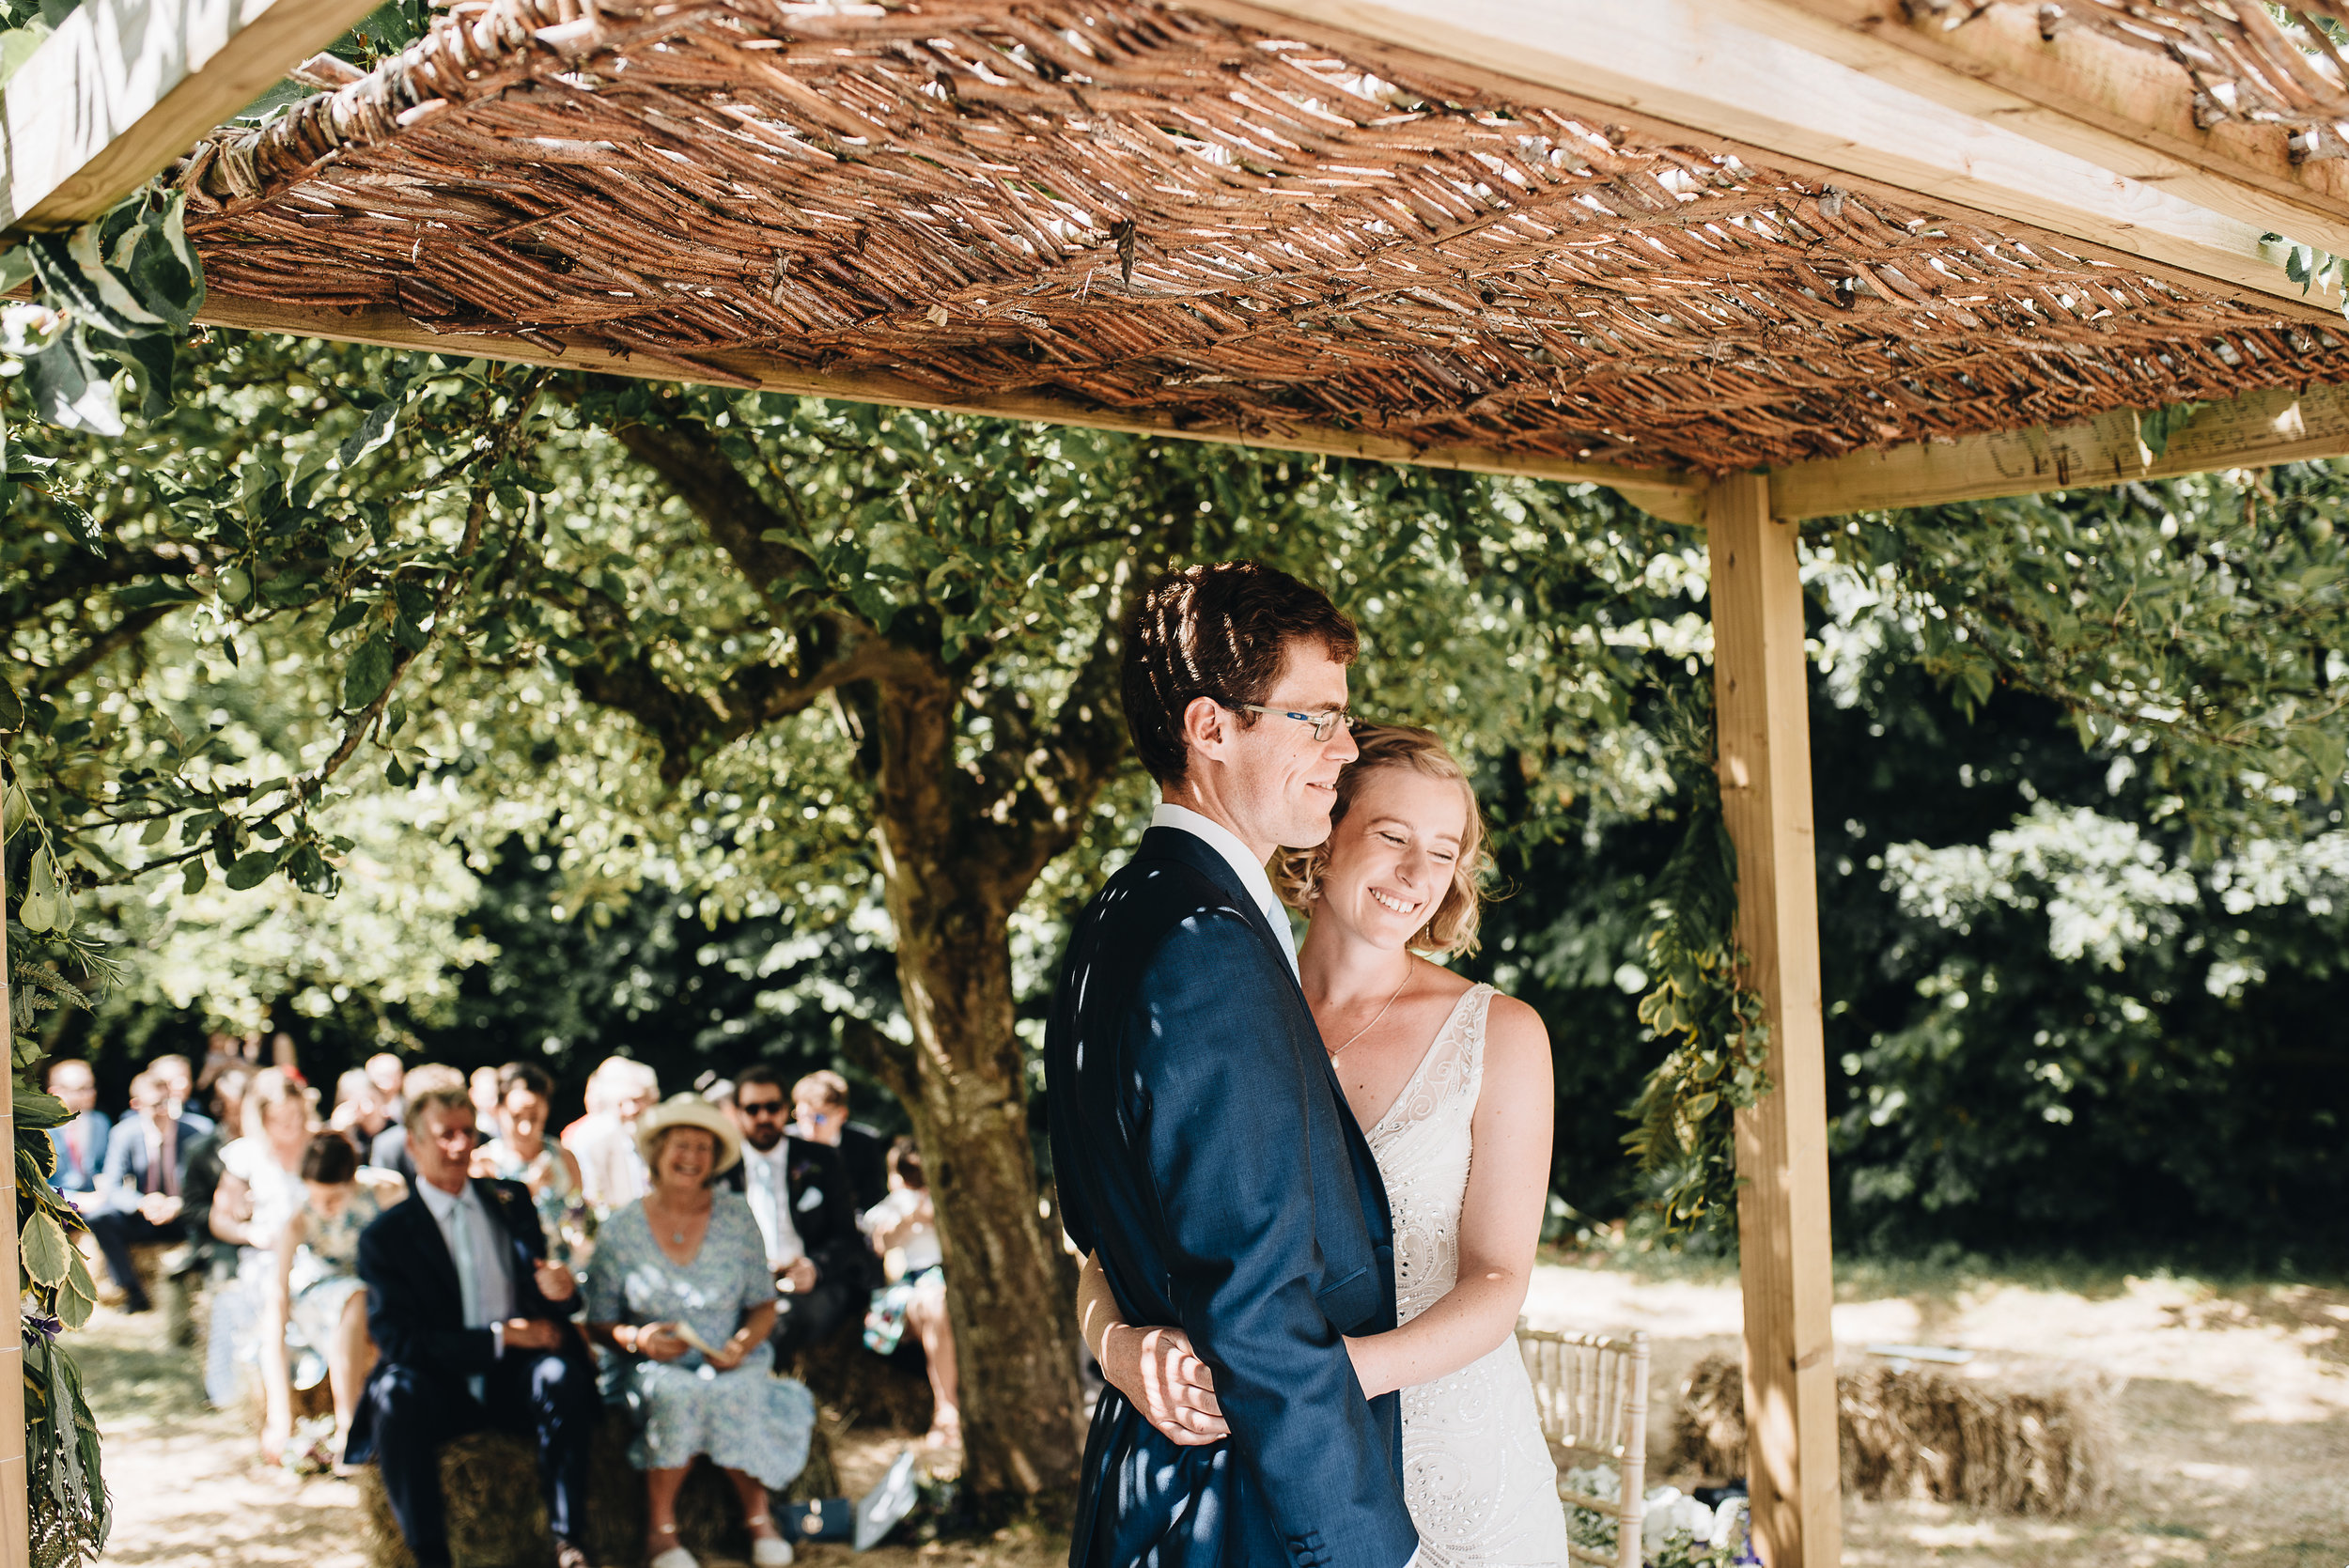 Alan and Rosa's Wedding at Folly Farm centre in Bristol was selected to be featured over on Your Perfect Wedding Photographer. Click the image to have a look.